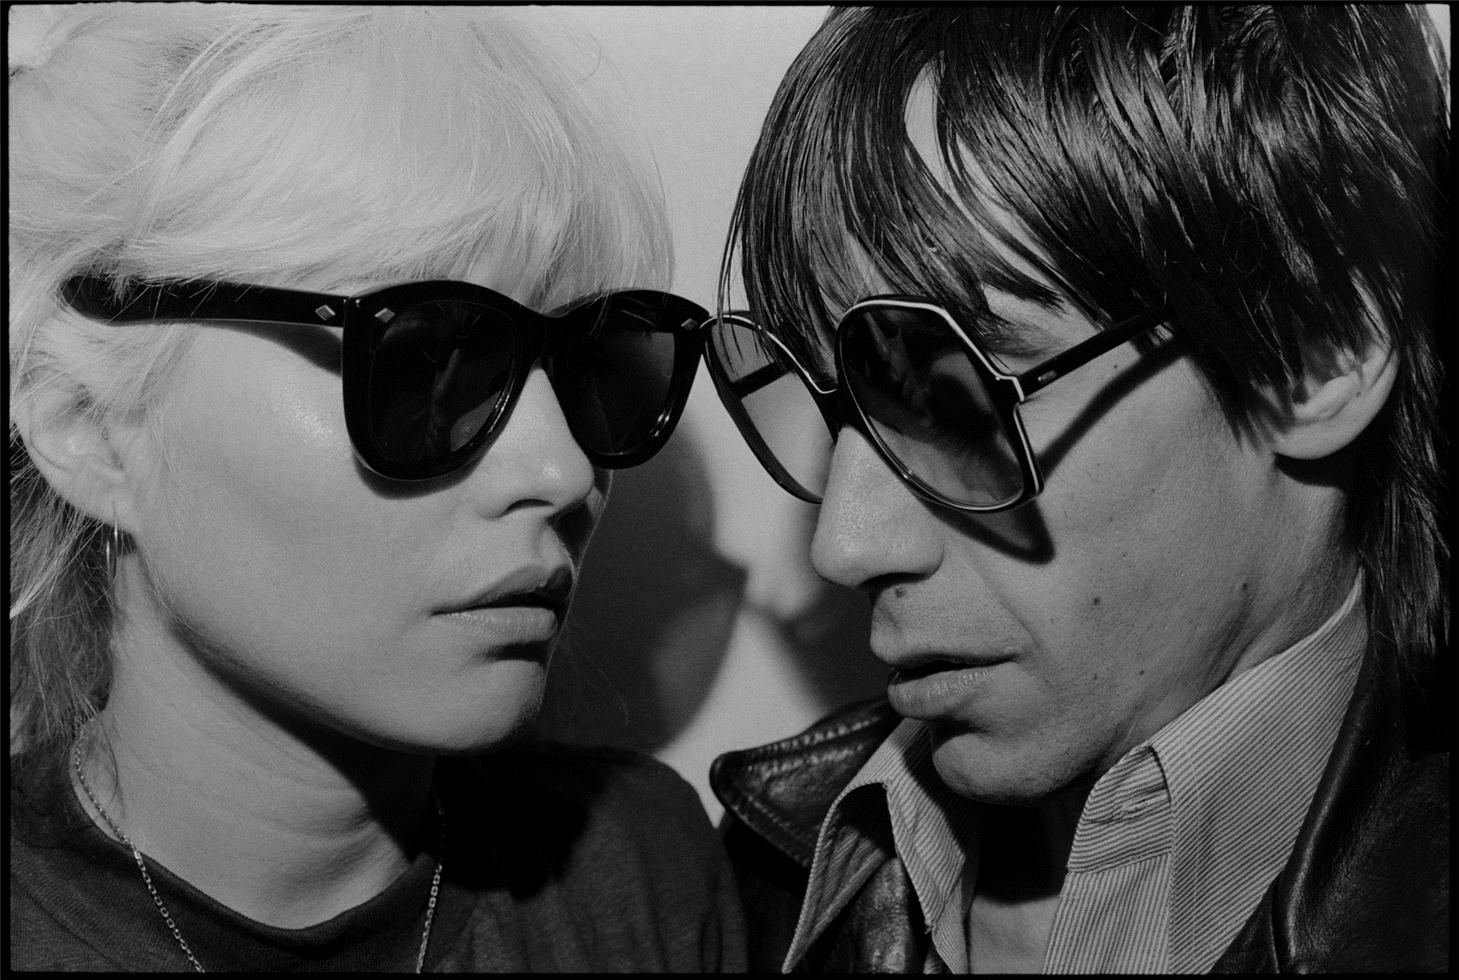 Iggy Pop producirá una nueva serie documental punk con Debbie Harry